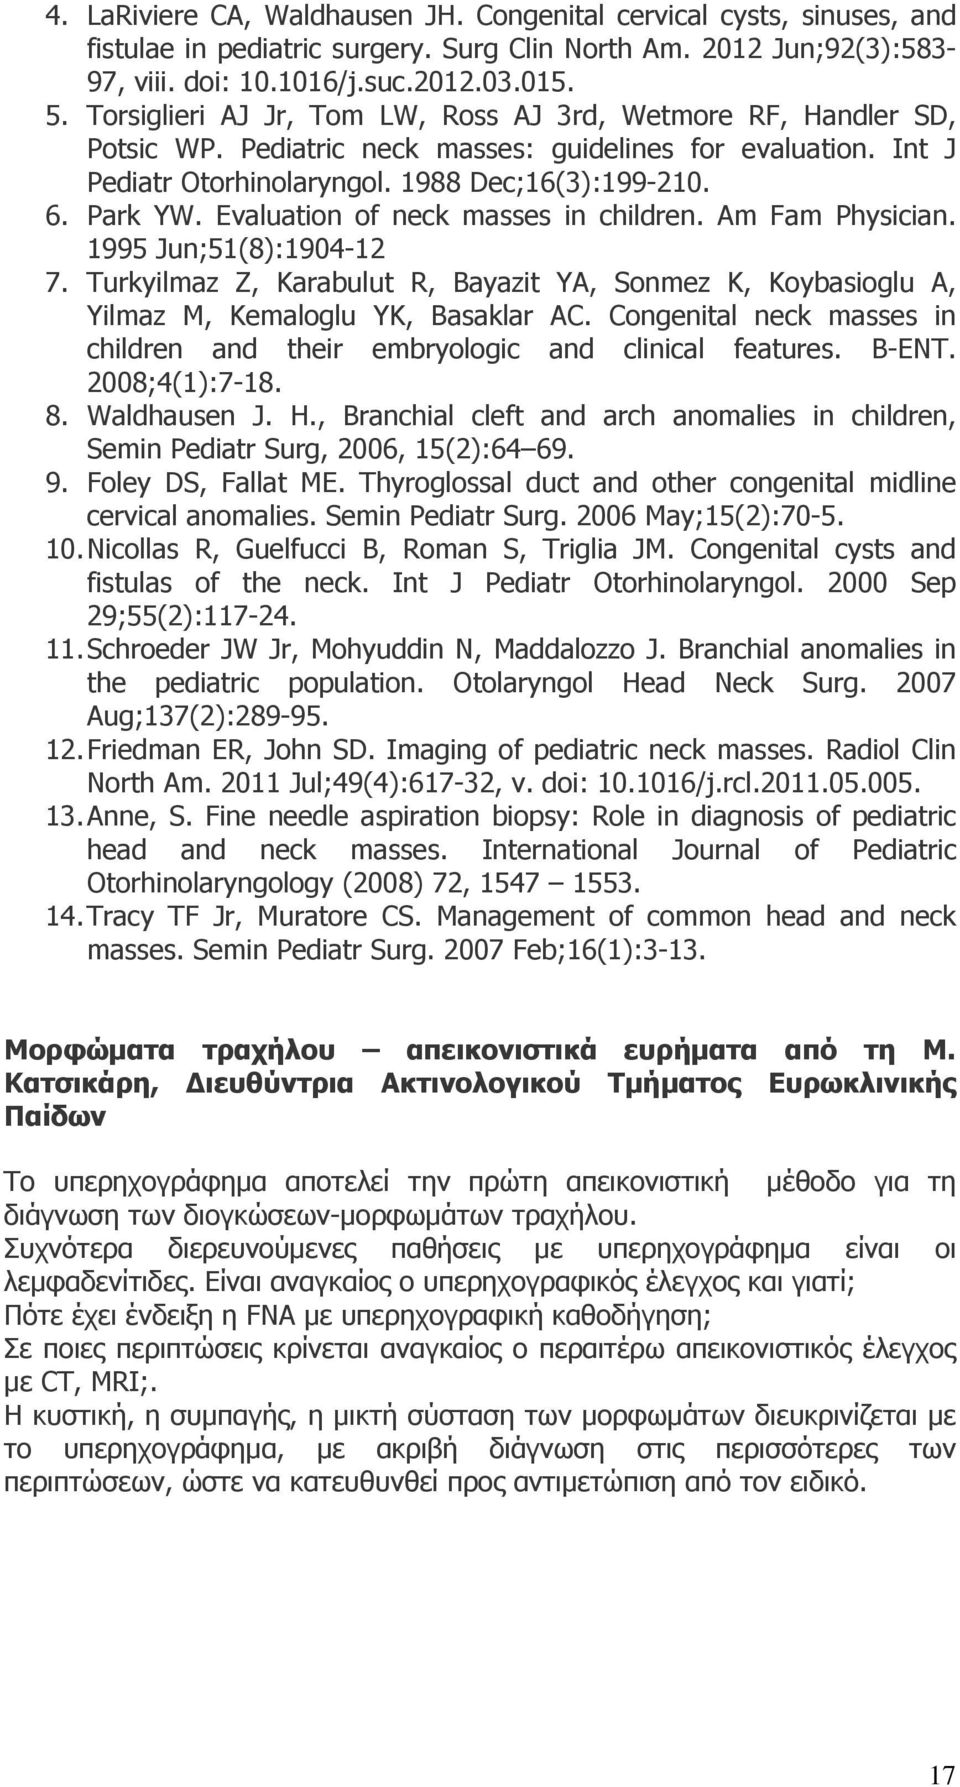 Evaluation of neck masses in children. Am Fam Physician. 1995 Jun;51(8):1904-12 7. Turkyilmaz Z, Karabulut R, Bayazit YA, Sonmez K, Koybasioglu A, Yilmaz M, Kemaloglu YK, Basaklar AC.